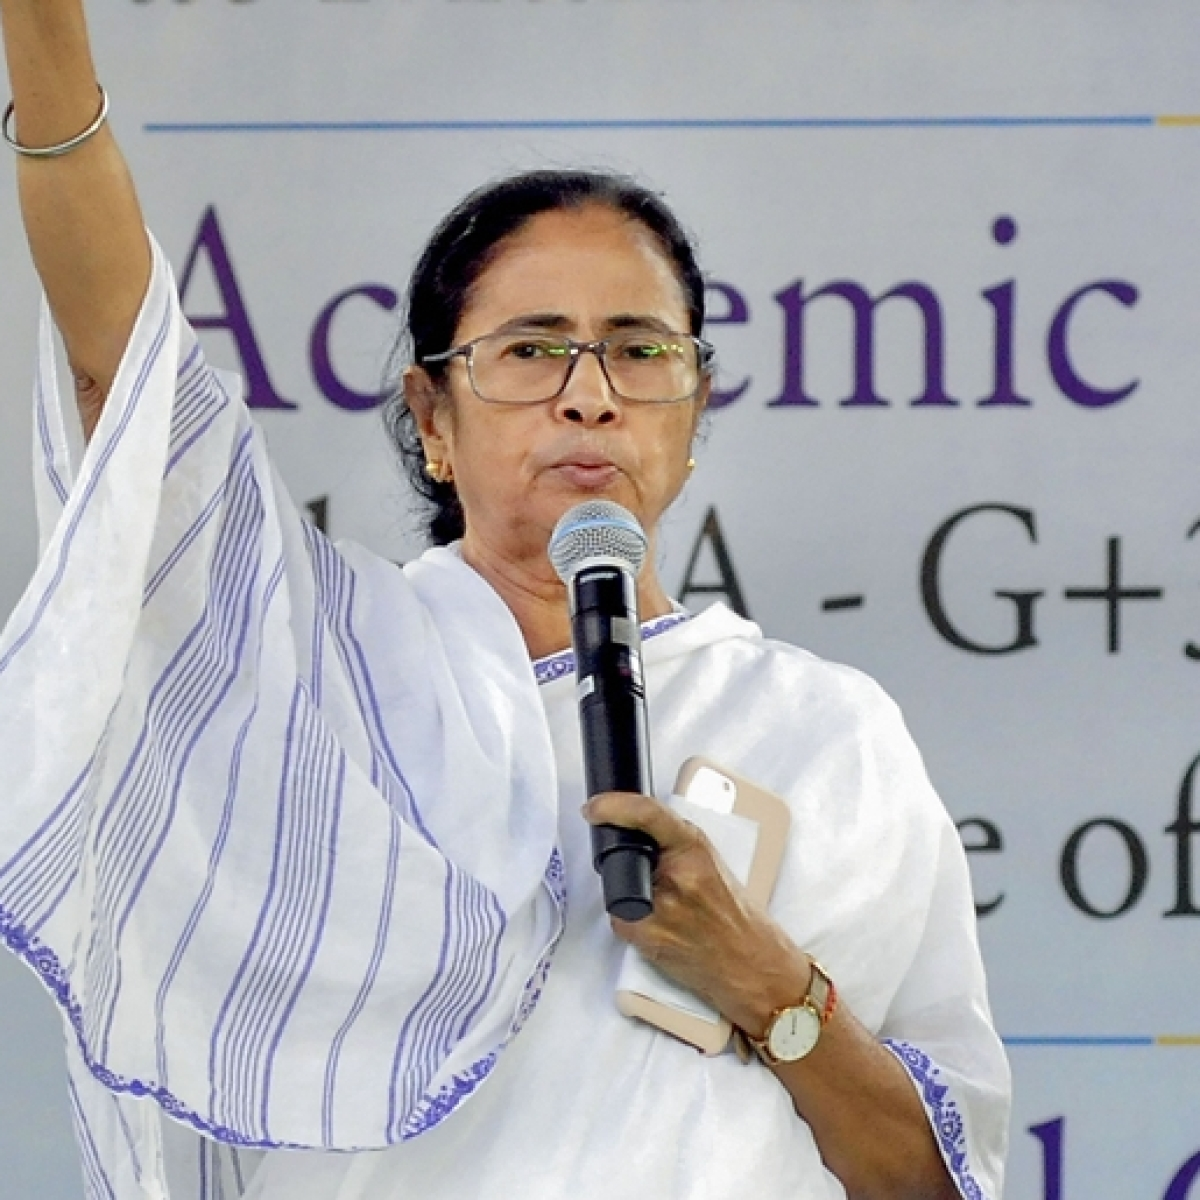 As Mamata Banerjee seeks Army aid over Cyclone Amphan, a look at the time she wondered about a military coup